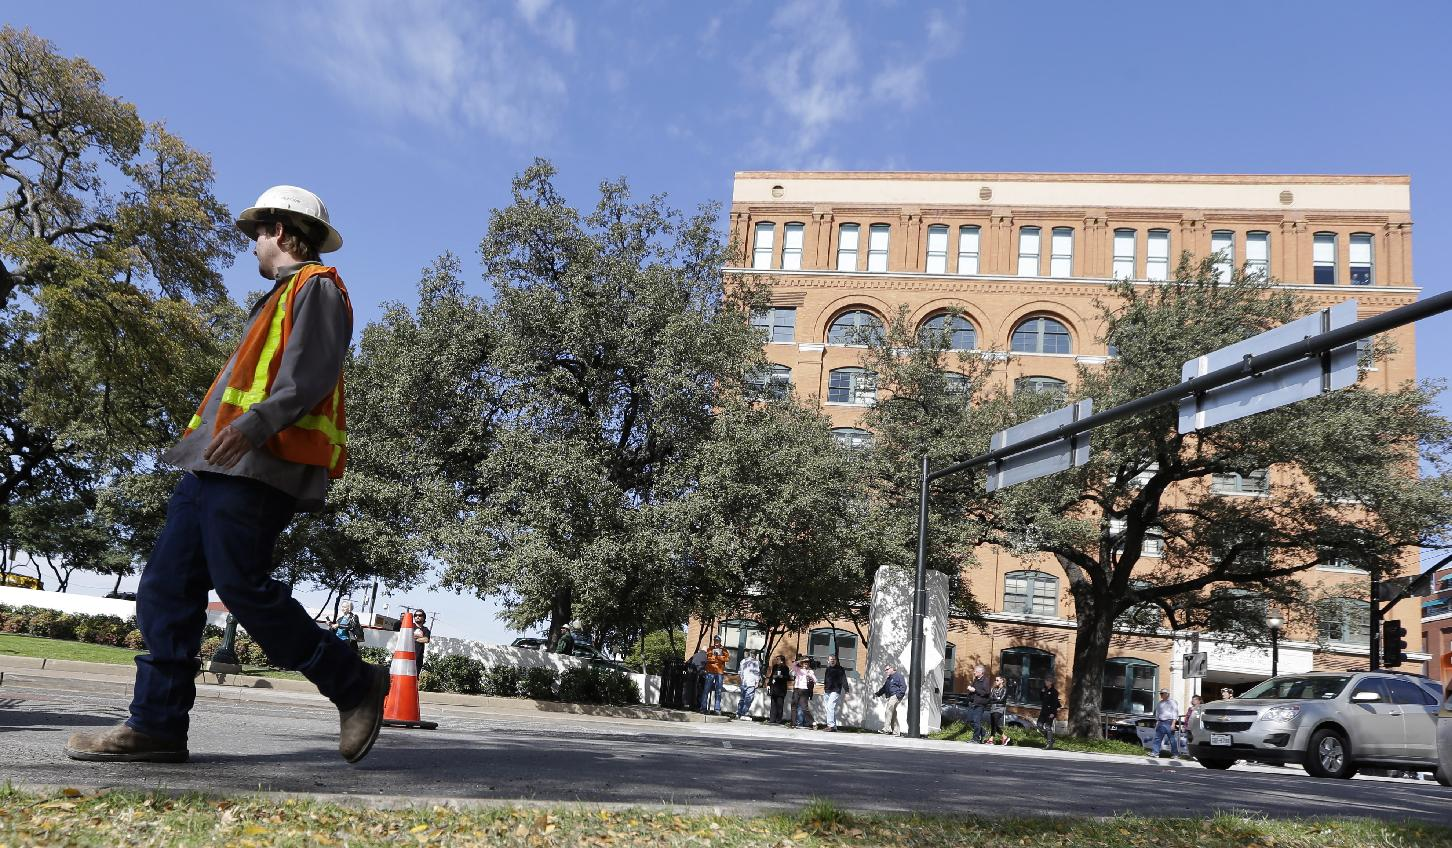 A worker walks by a work cone marking off a section of street surface that was ripped up near the Sixth Floor Museum, in the background, on Dealey Plaza where JFK was assassinated in downtown Dallas,  Tuesday, Nov. 19, 2013. Days before Dallas' observance of JFK assassination date, 'X's marking shooting spots on the street were removed by city work crews as the city prepares for Friday's events that will solemnly commemorate the 50th anniversary of JFK being assassinated